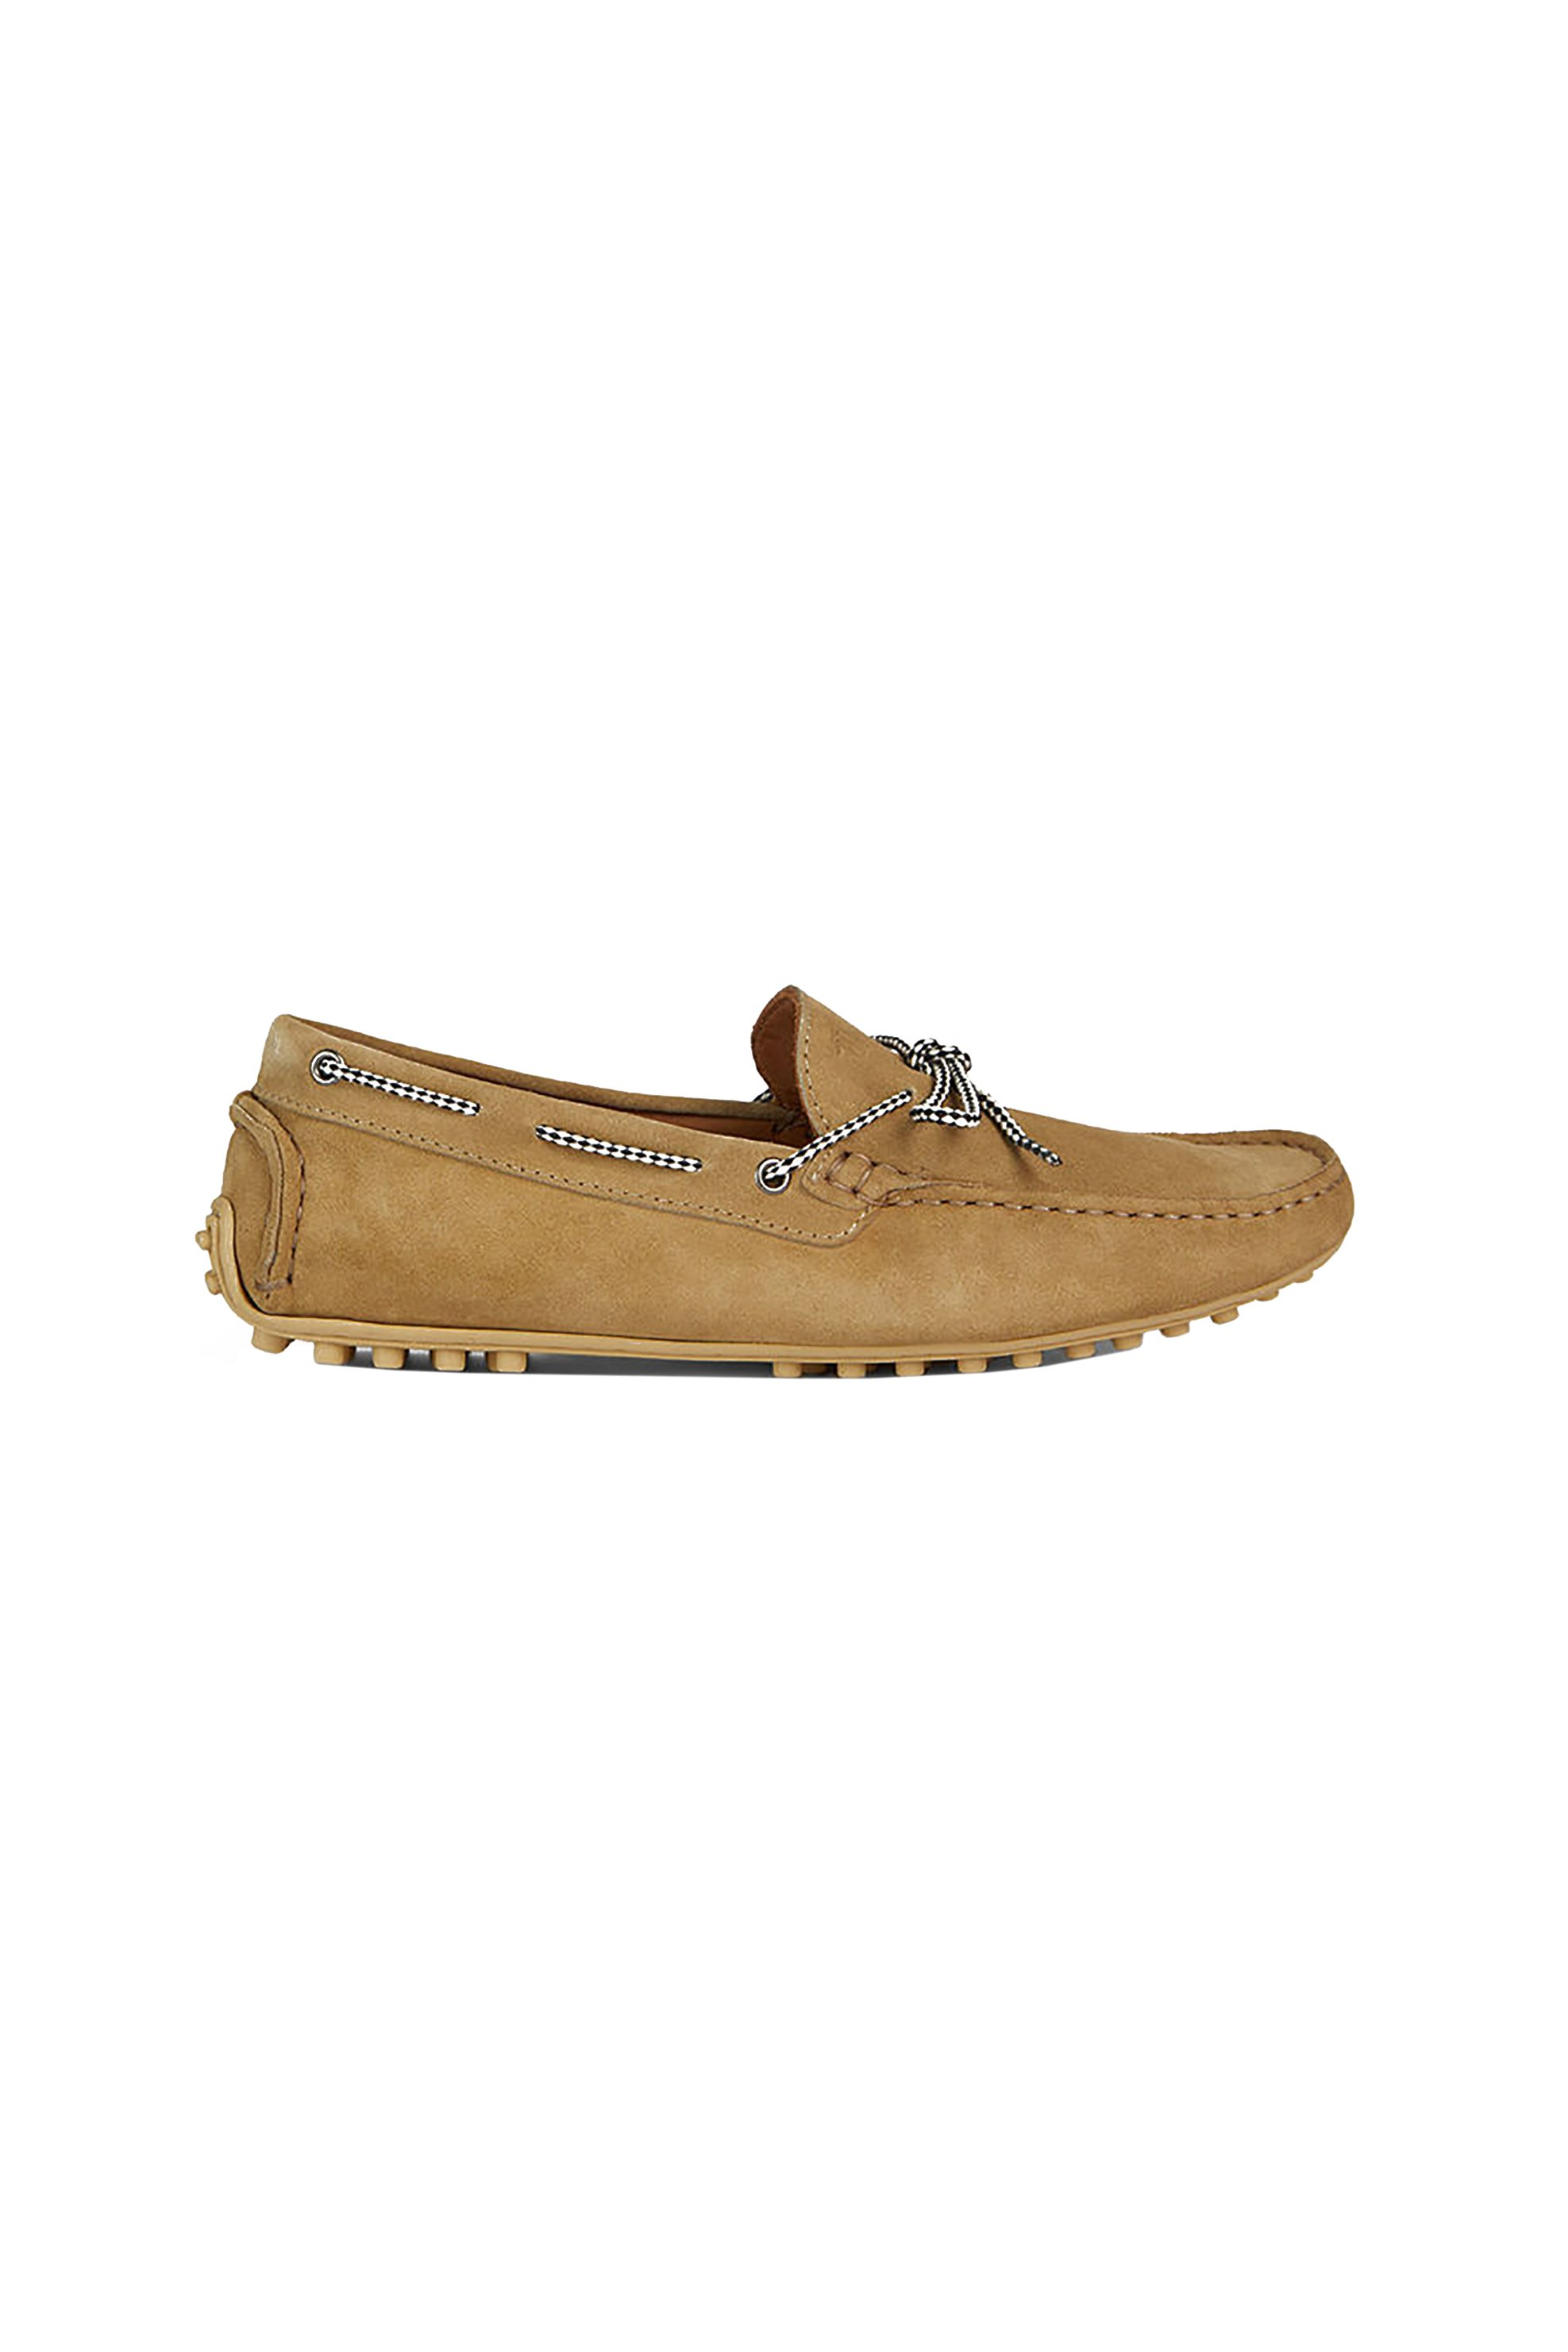 d94bef9f27ee Notos Trussardi Jeans ανδρικά loafers suede – 77A00169-9Y099999 – Μπεζ